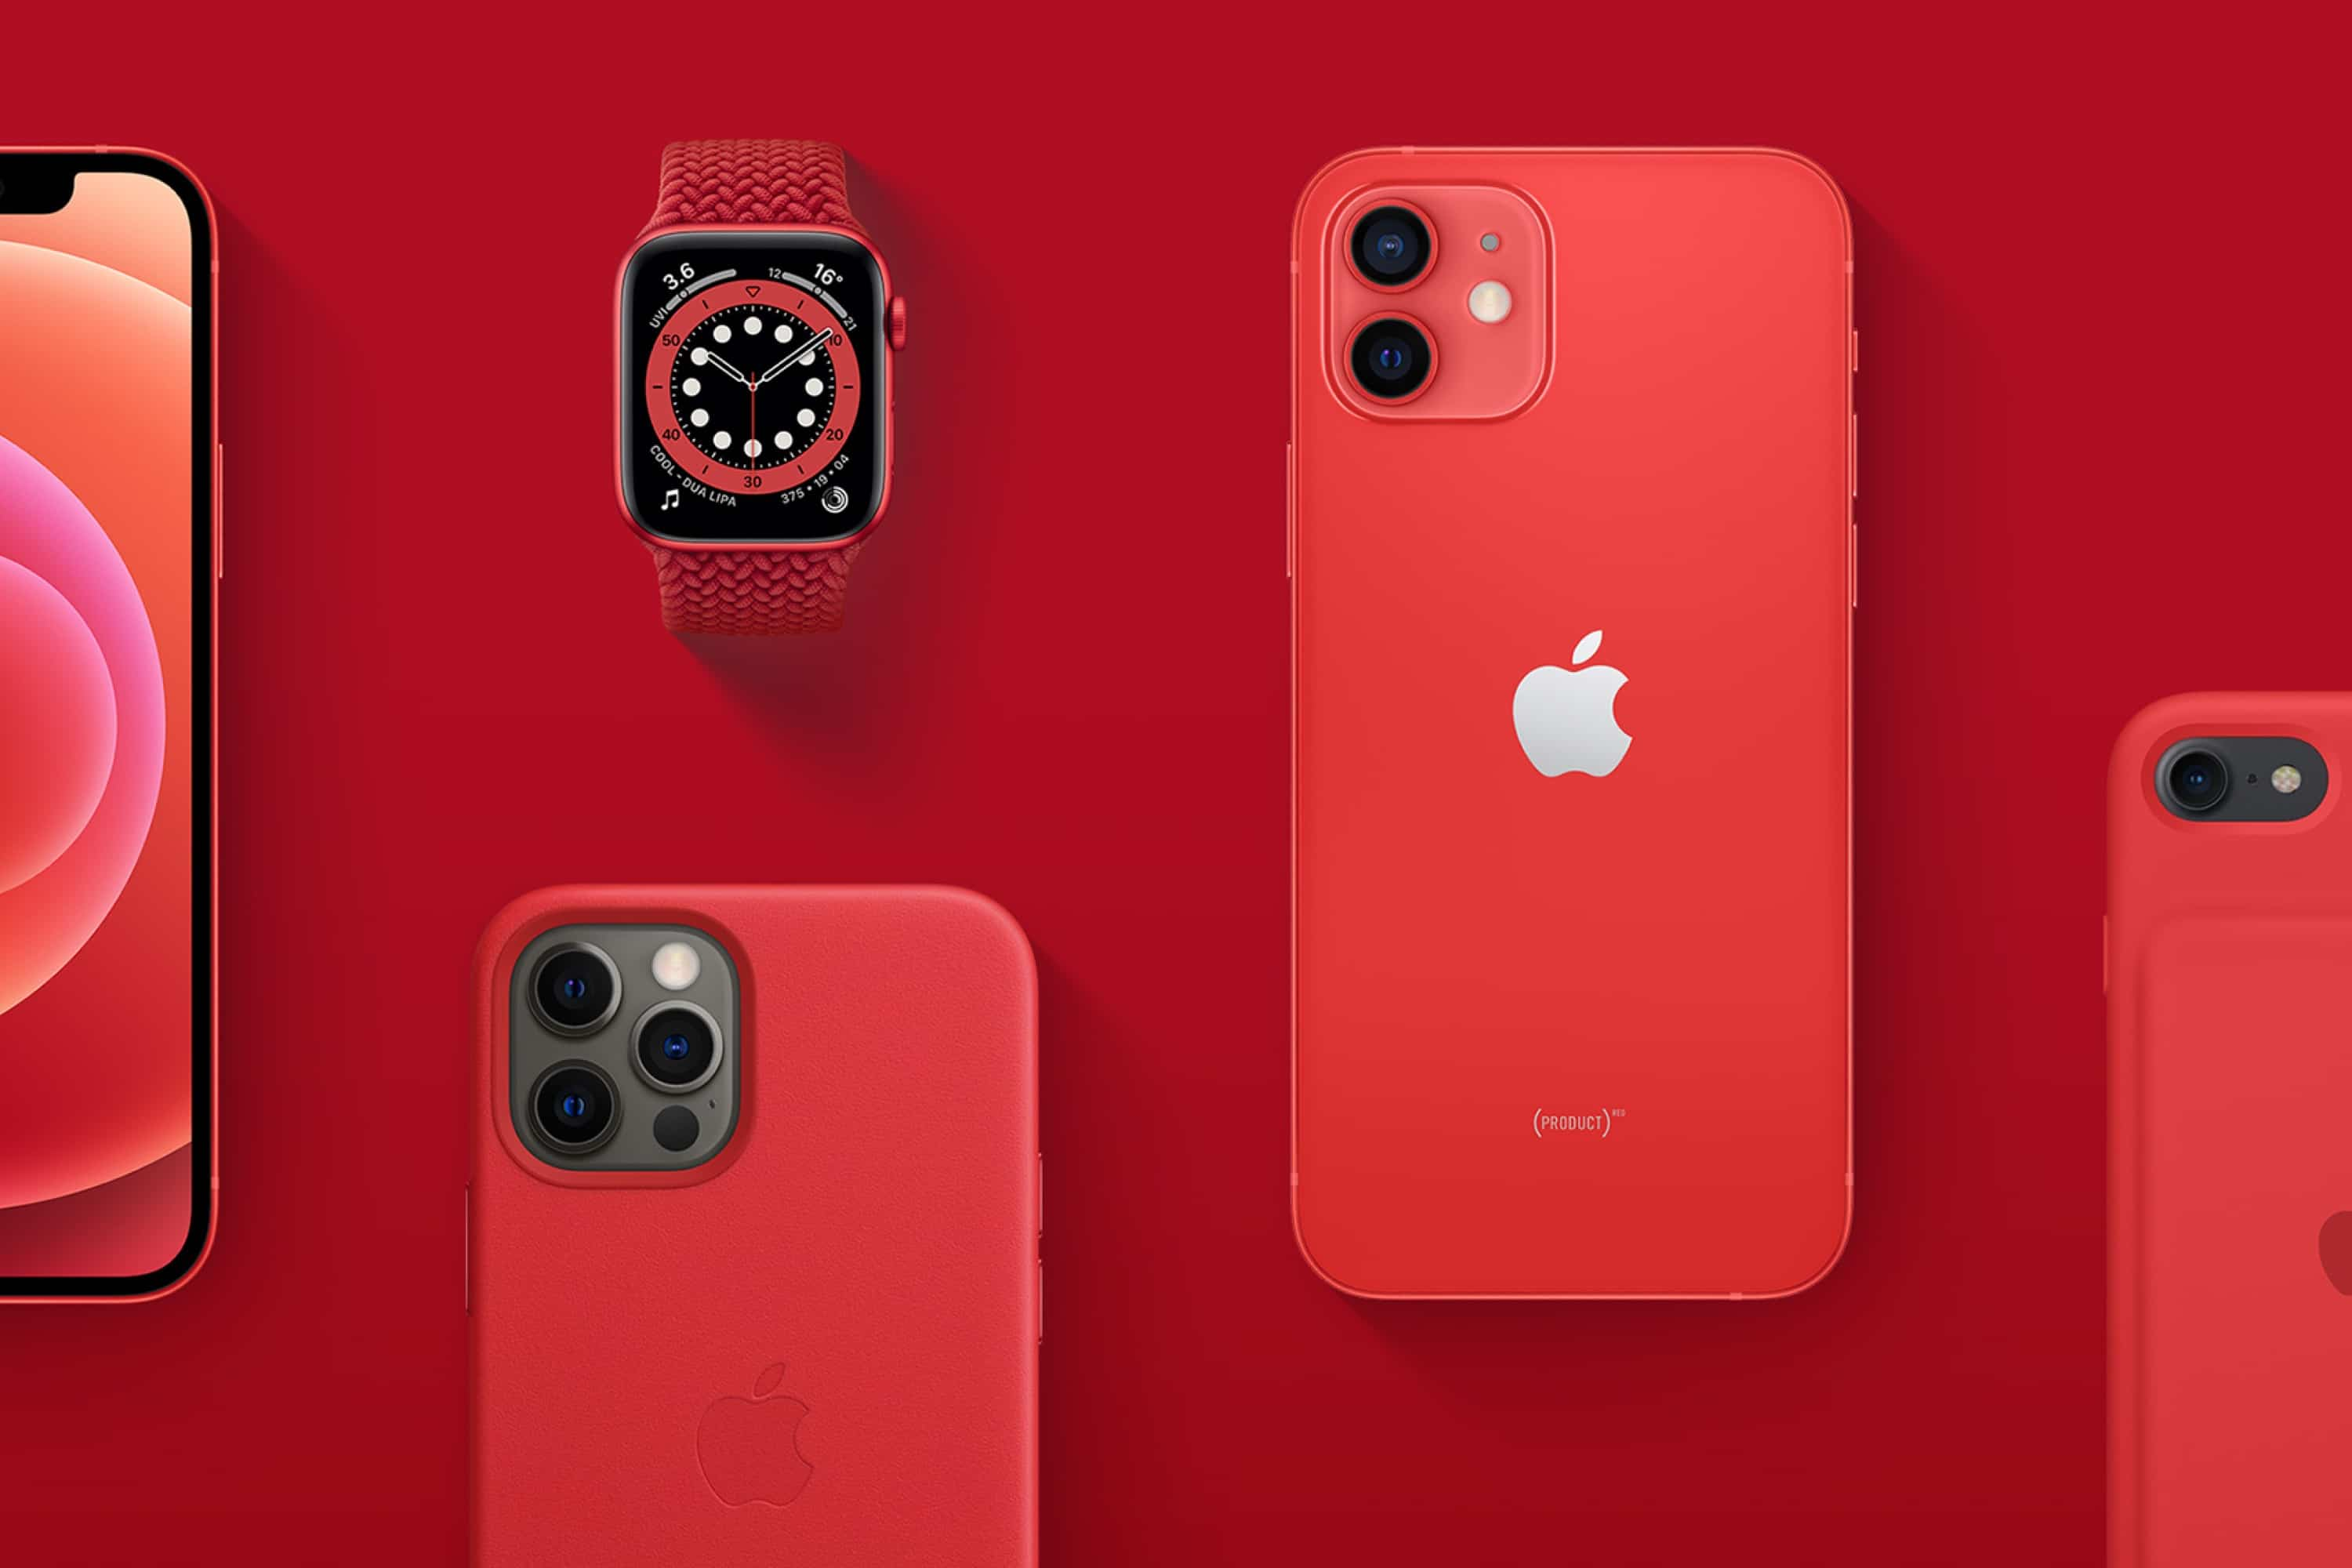 apple-x-red-fight-against-hiv-aids-and-covid-19-20201201-1